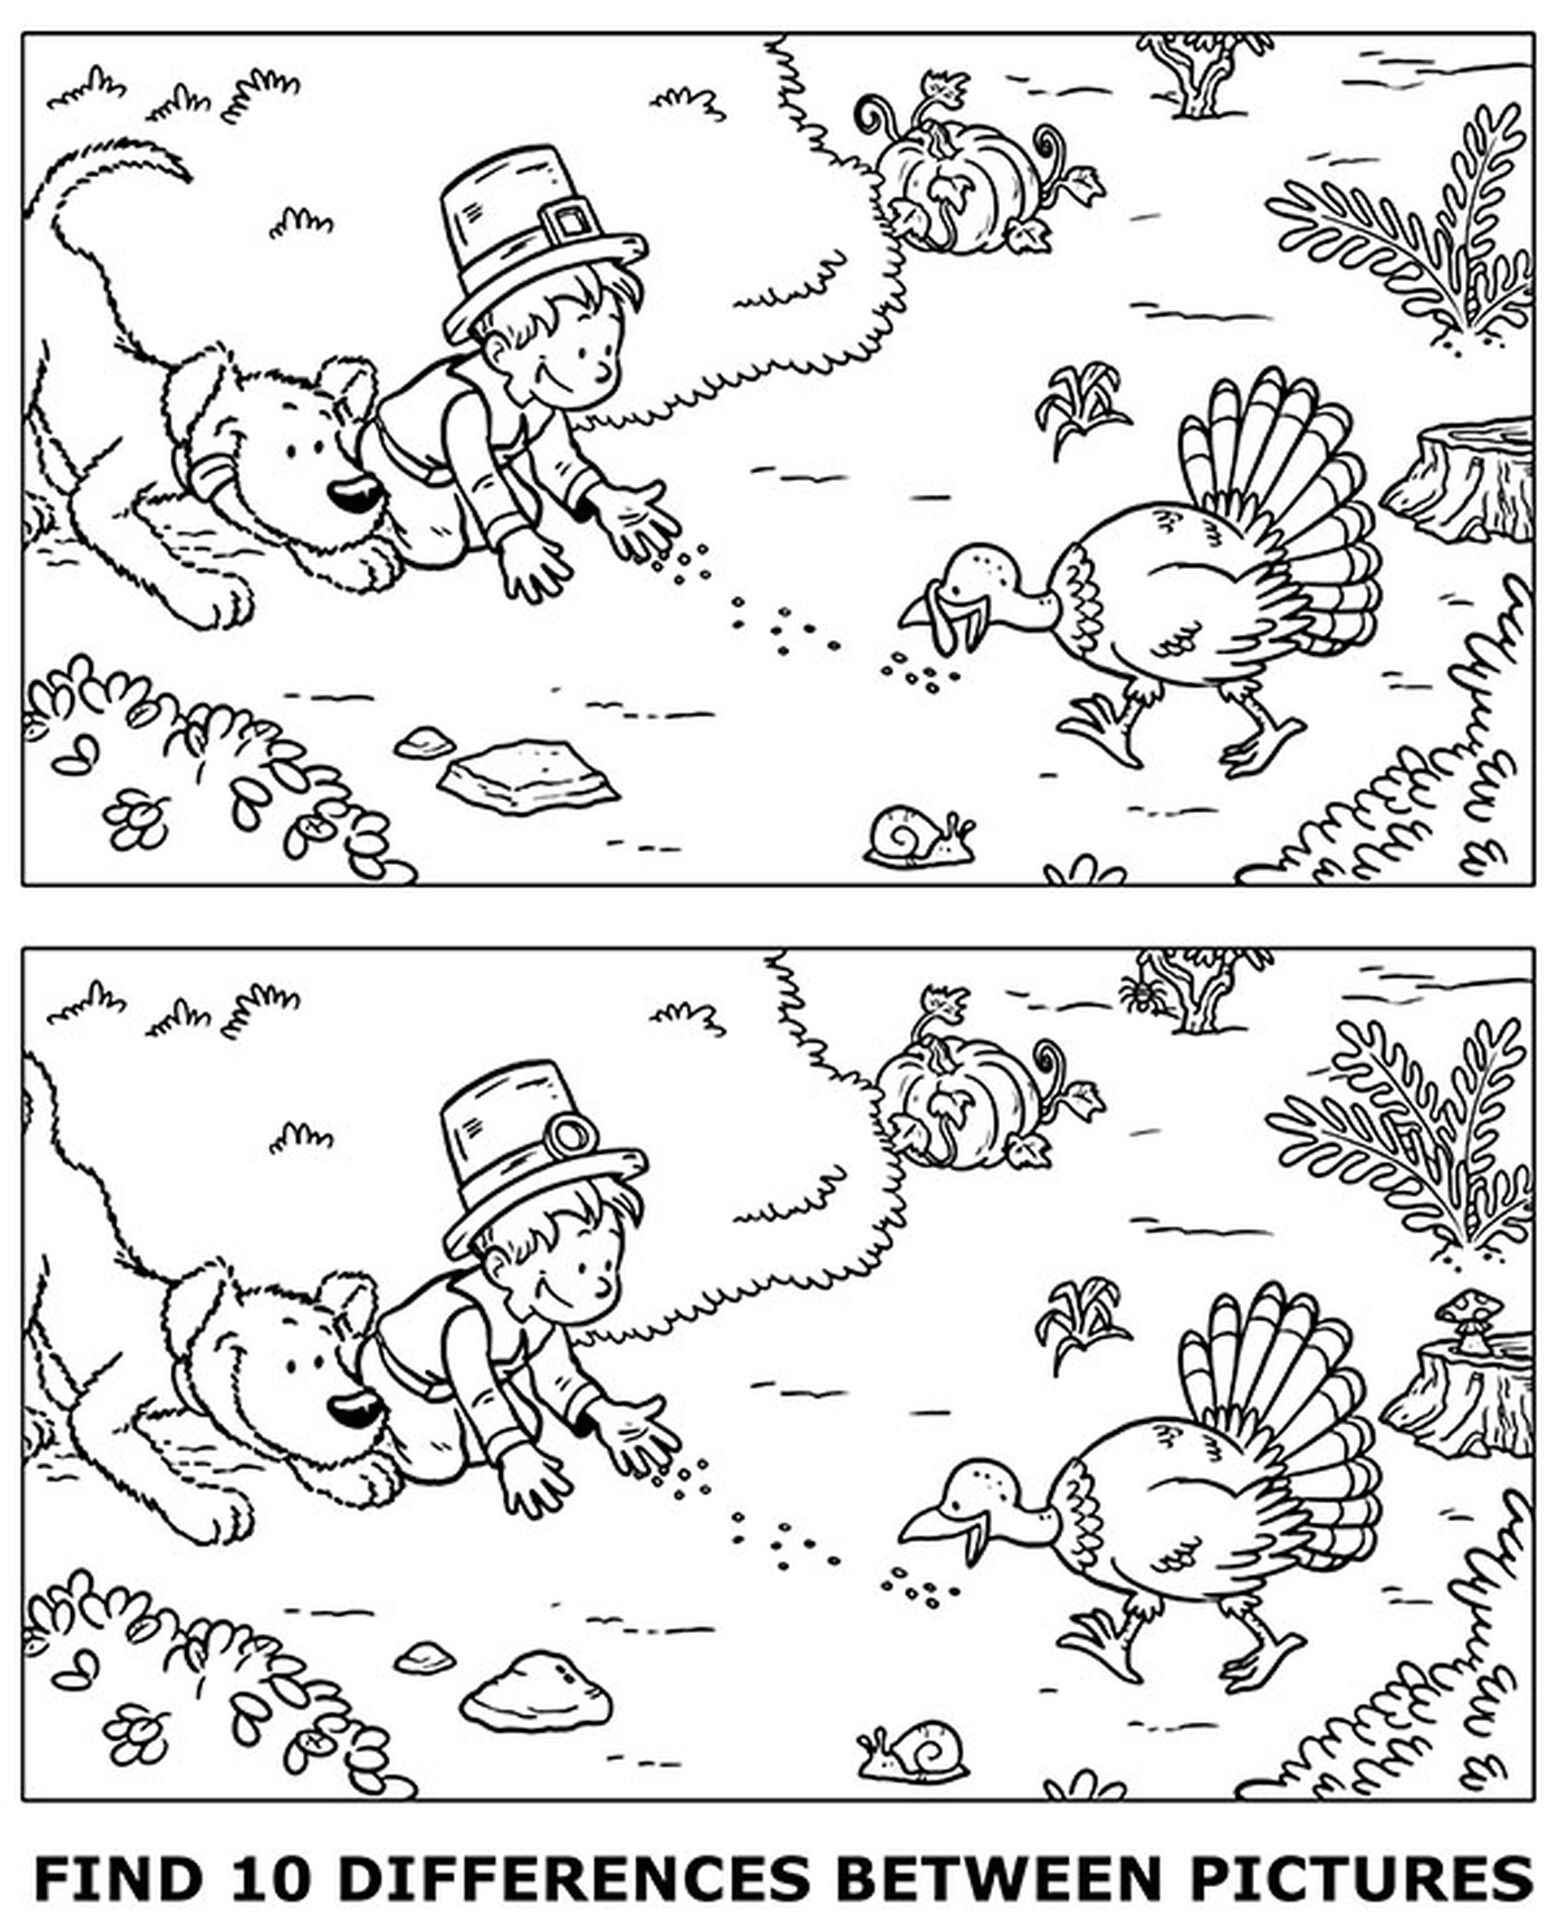 Worksheet Find 10 Differences Coloring Page